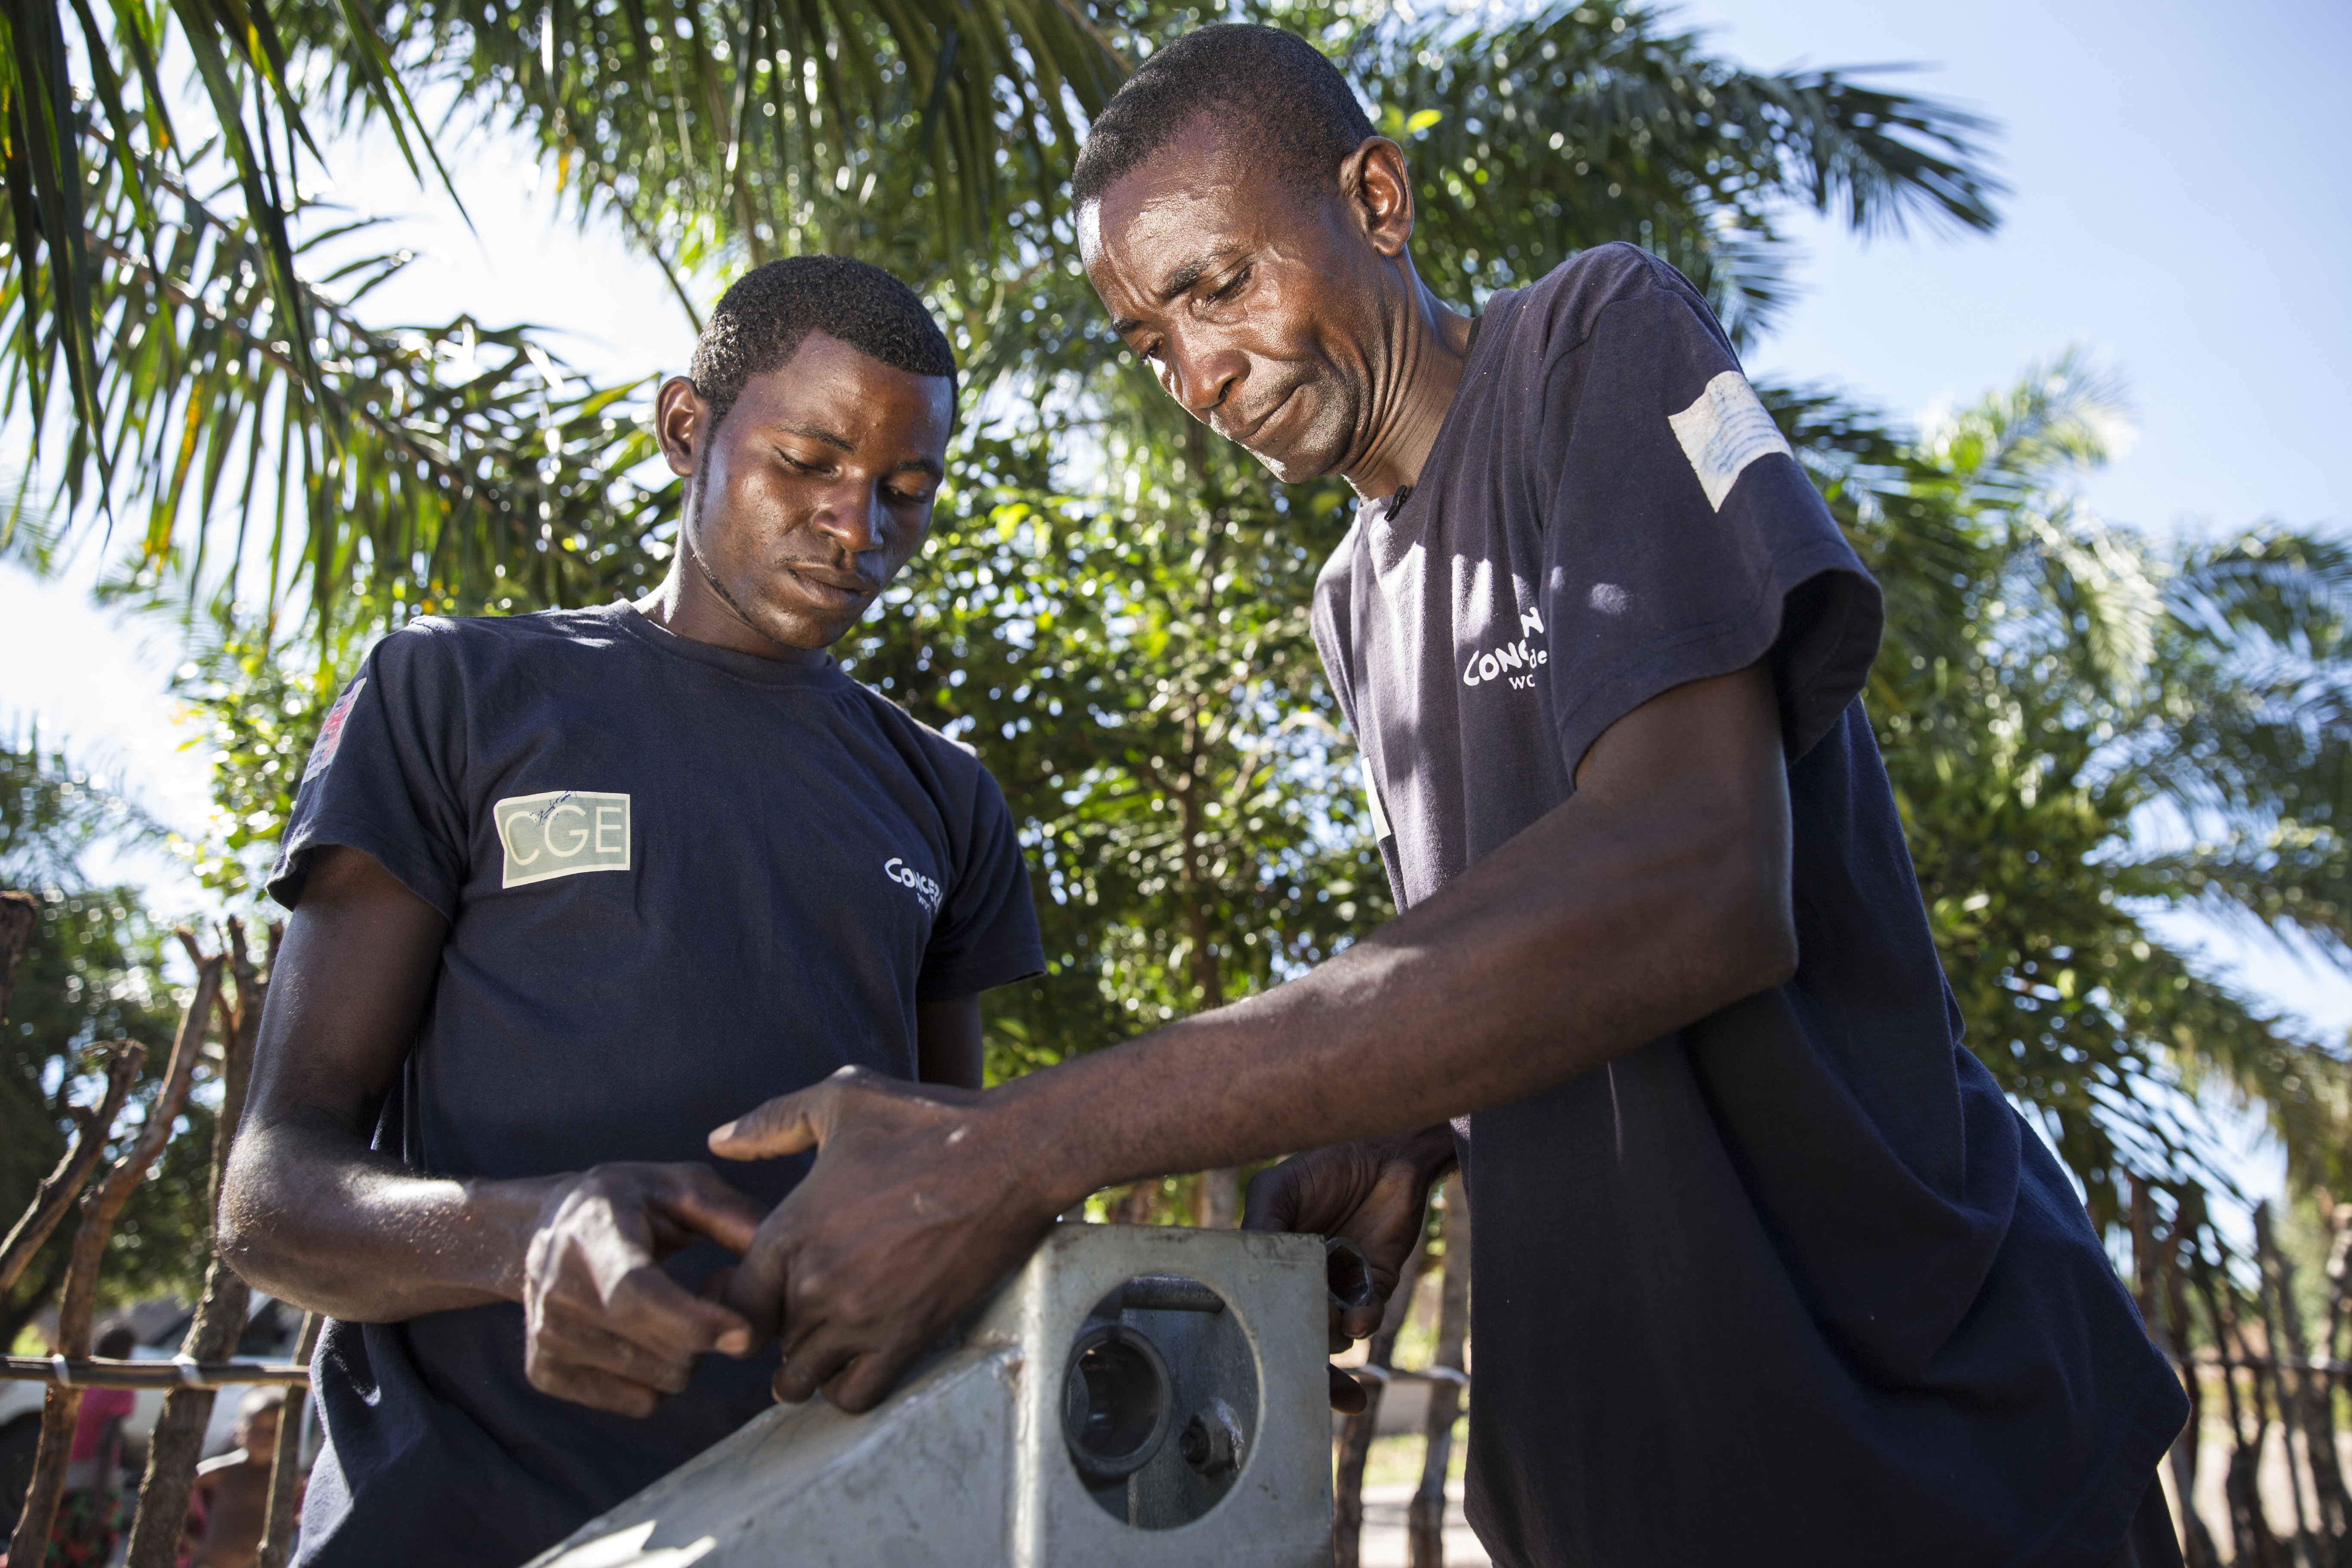 Pump technician, Ilunga Wailungabje, and supervisor Daviens Ngoy Wangay (on right), doing maintenance work in DRC